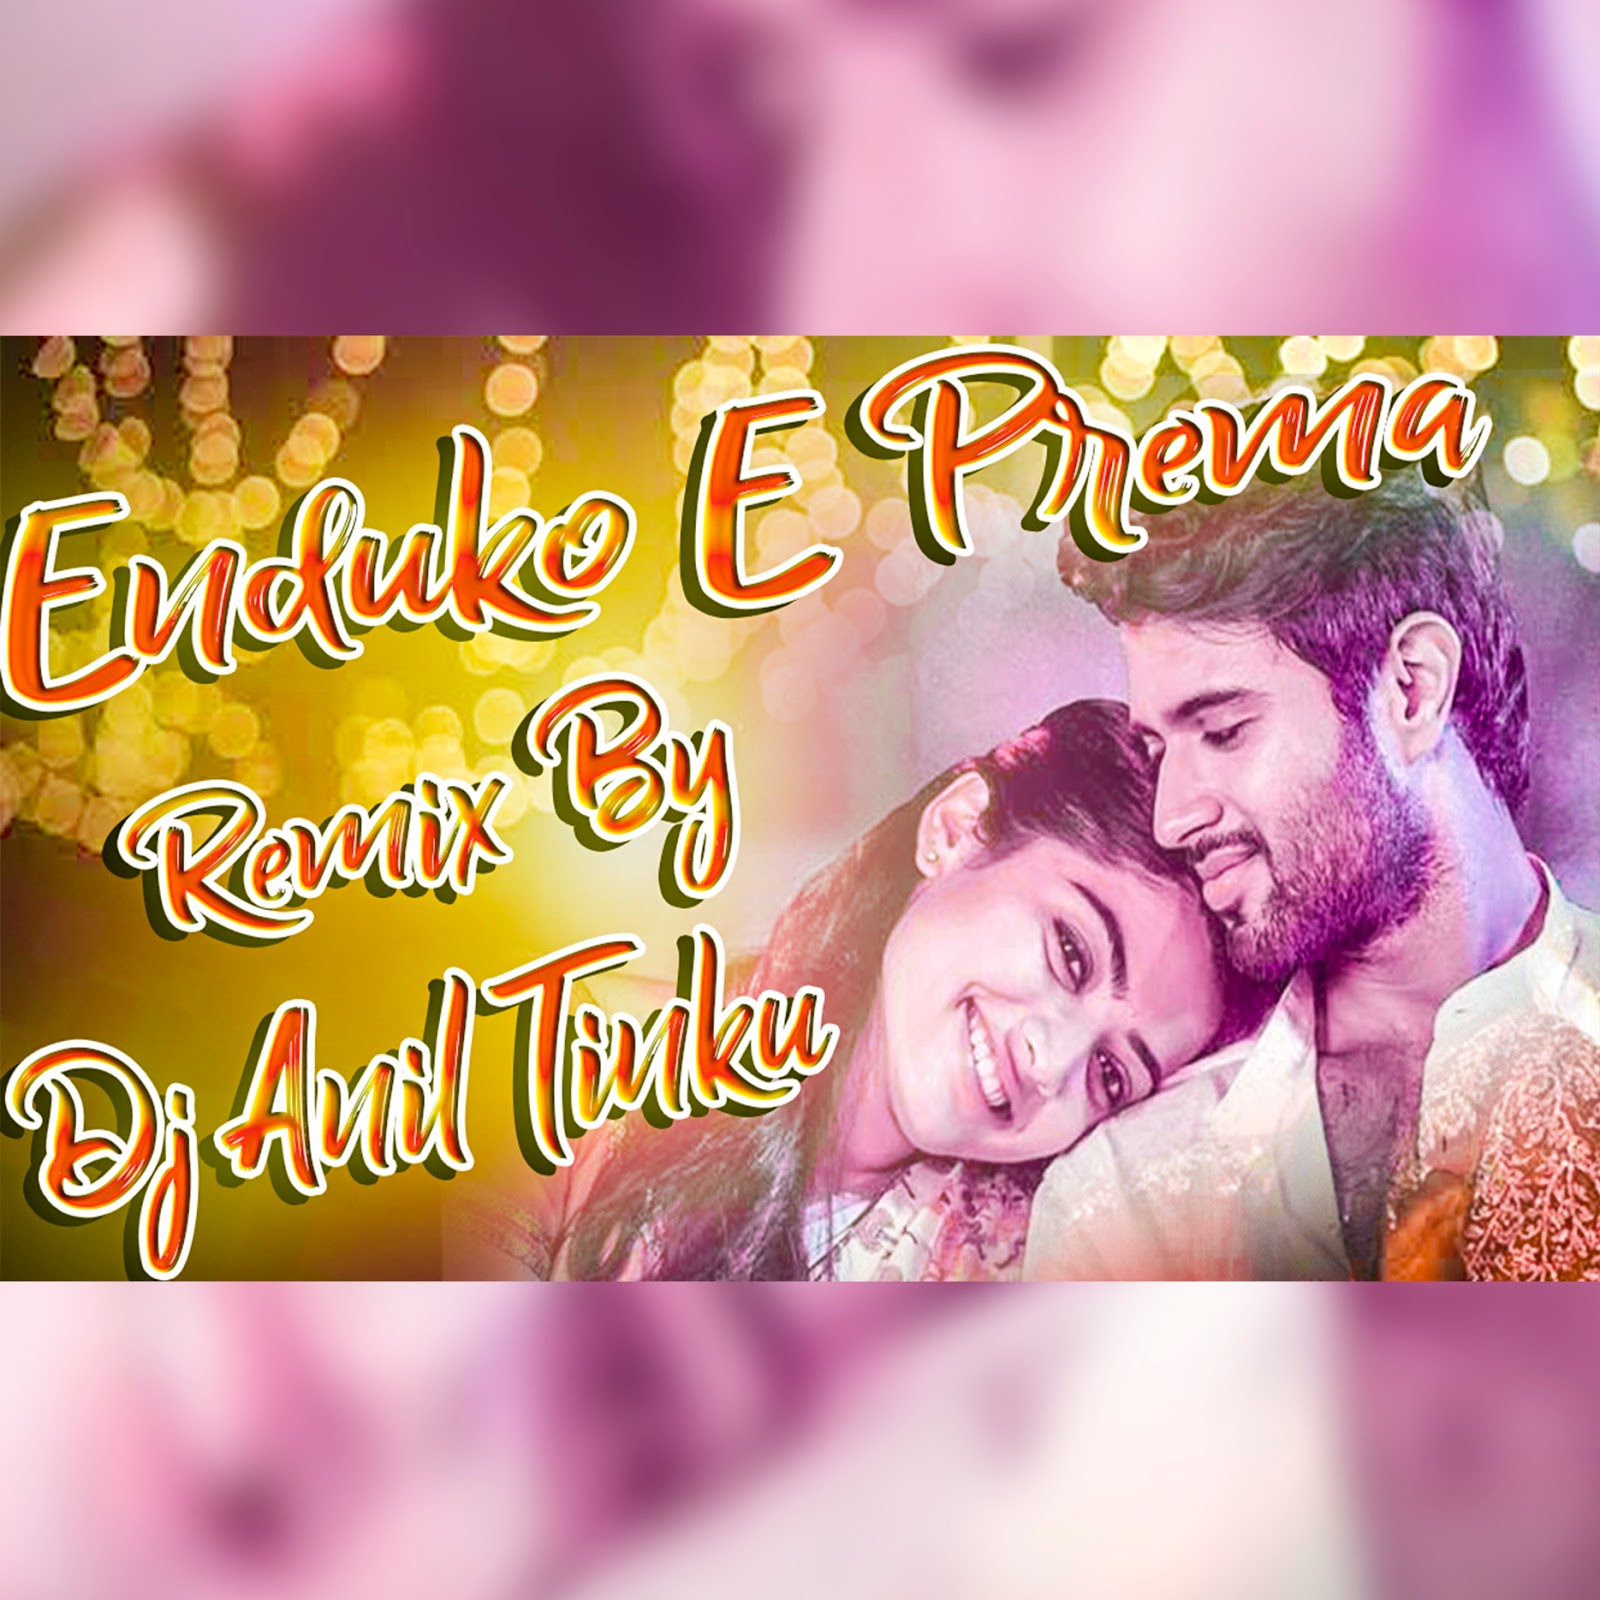 enduko ee prema dj song, enduko ee prema lyrics, enduko ee prema nanninthaga preminchina, enduko ee prema jesus song, enduko ee prema nanninthaga preminchina dj, enduko ee prema enthala dhuramaye, enduko ee prema entha madhuram, enduko ee prema nanninthaga preminchina dj remix, enduko ee prema enthala door ee, enduko ee prema song, enduko ee prema dj, enduko ee prema enthala door eee, enduko ee prema full song, enduko ee prema inthala, enduko ee prema love failure song, enduko ee prema nanninthaga preminchina full song, enduko ee prema naa songs, enduko ee prema private song,dj anil tinku 2019, dj anil tinku dj song, dj anil tinku from balanagar 2019, dj anil tinku from gdp, dj anil tinku songs download, dj anil tinku from balanagar, dj anil tinku balanagar, dj anil tinku songs